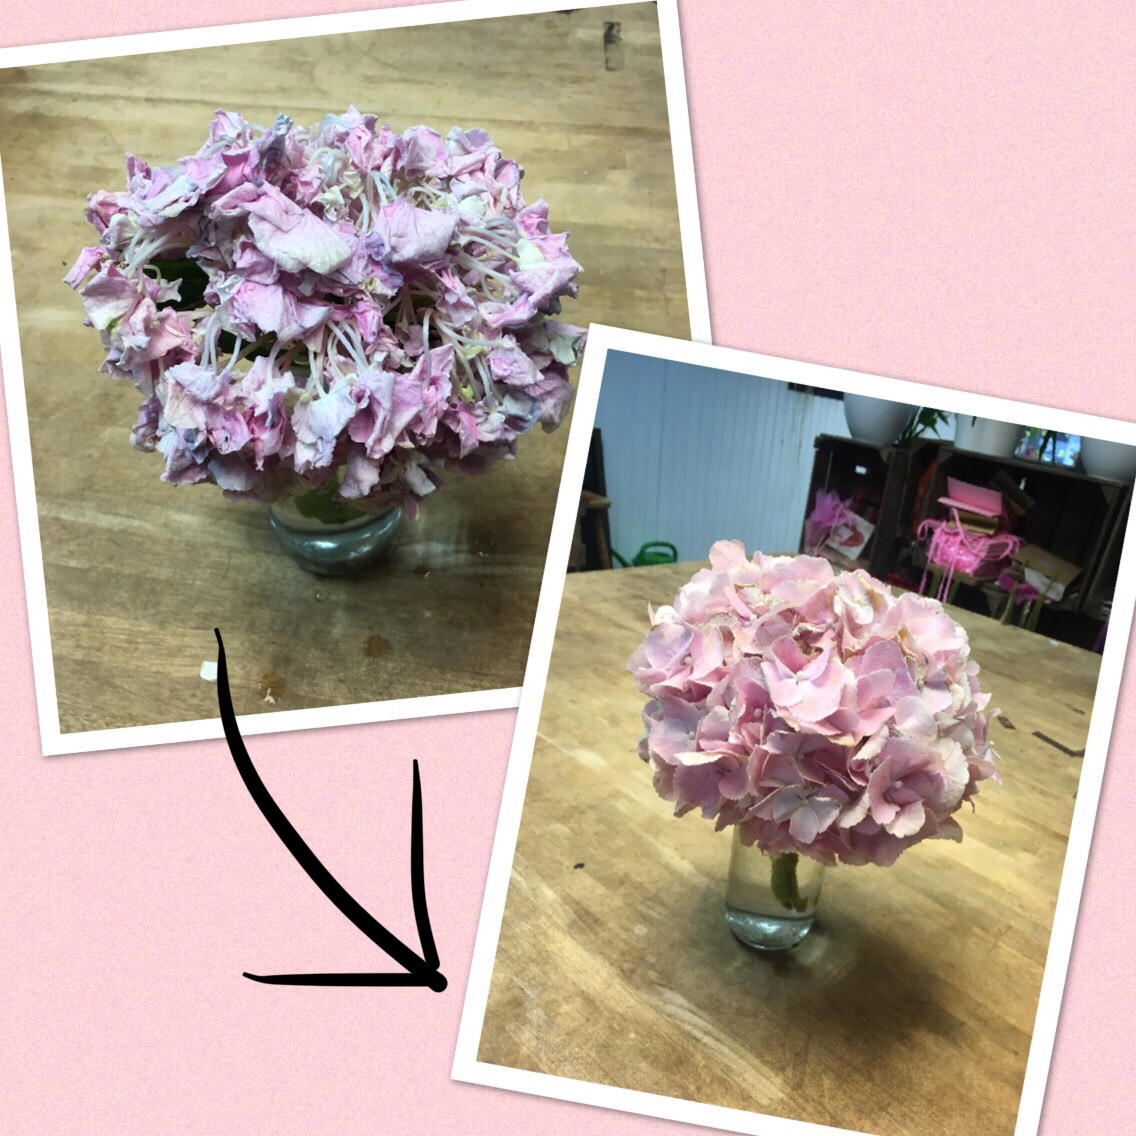 An example of Hydrangea which was revived after a good dunking.